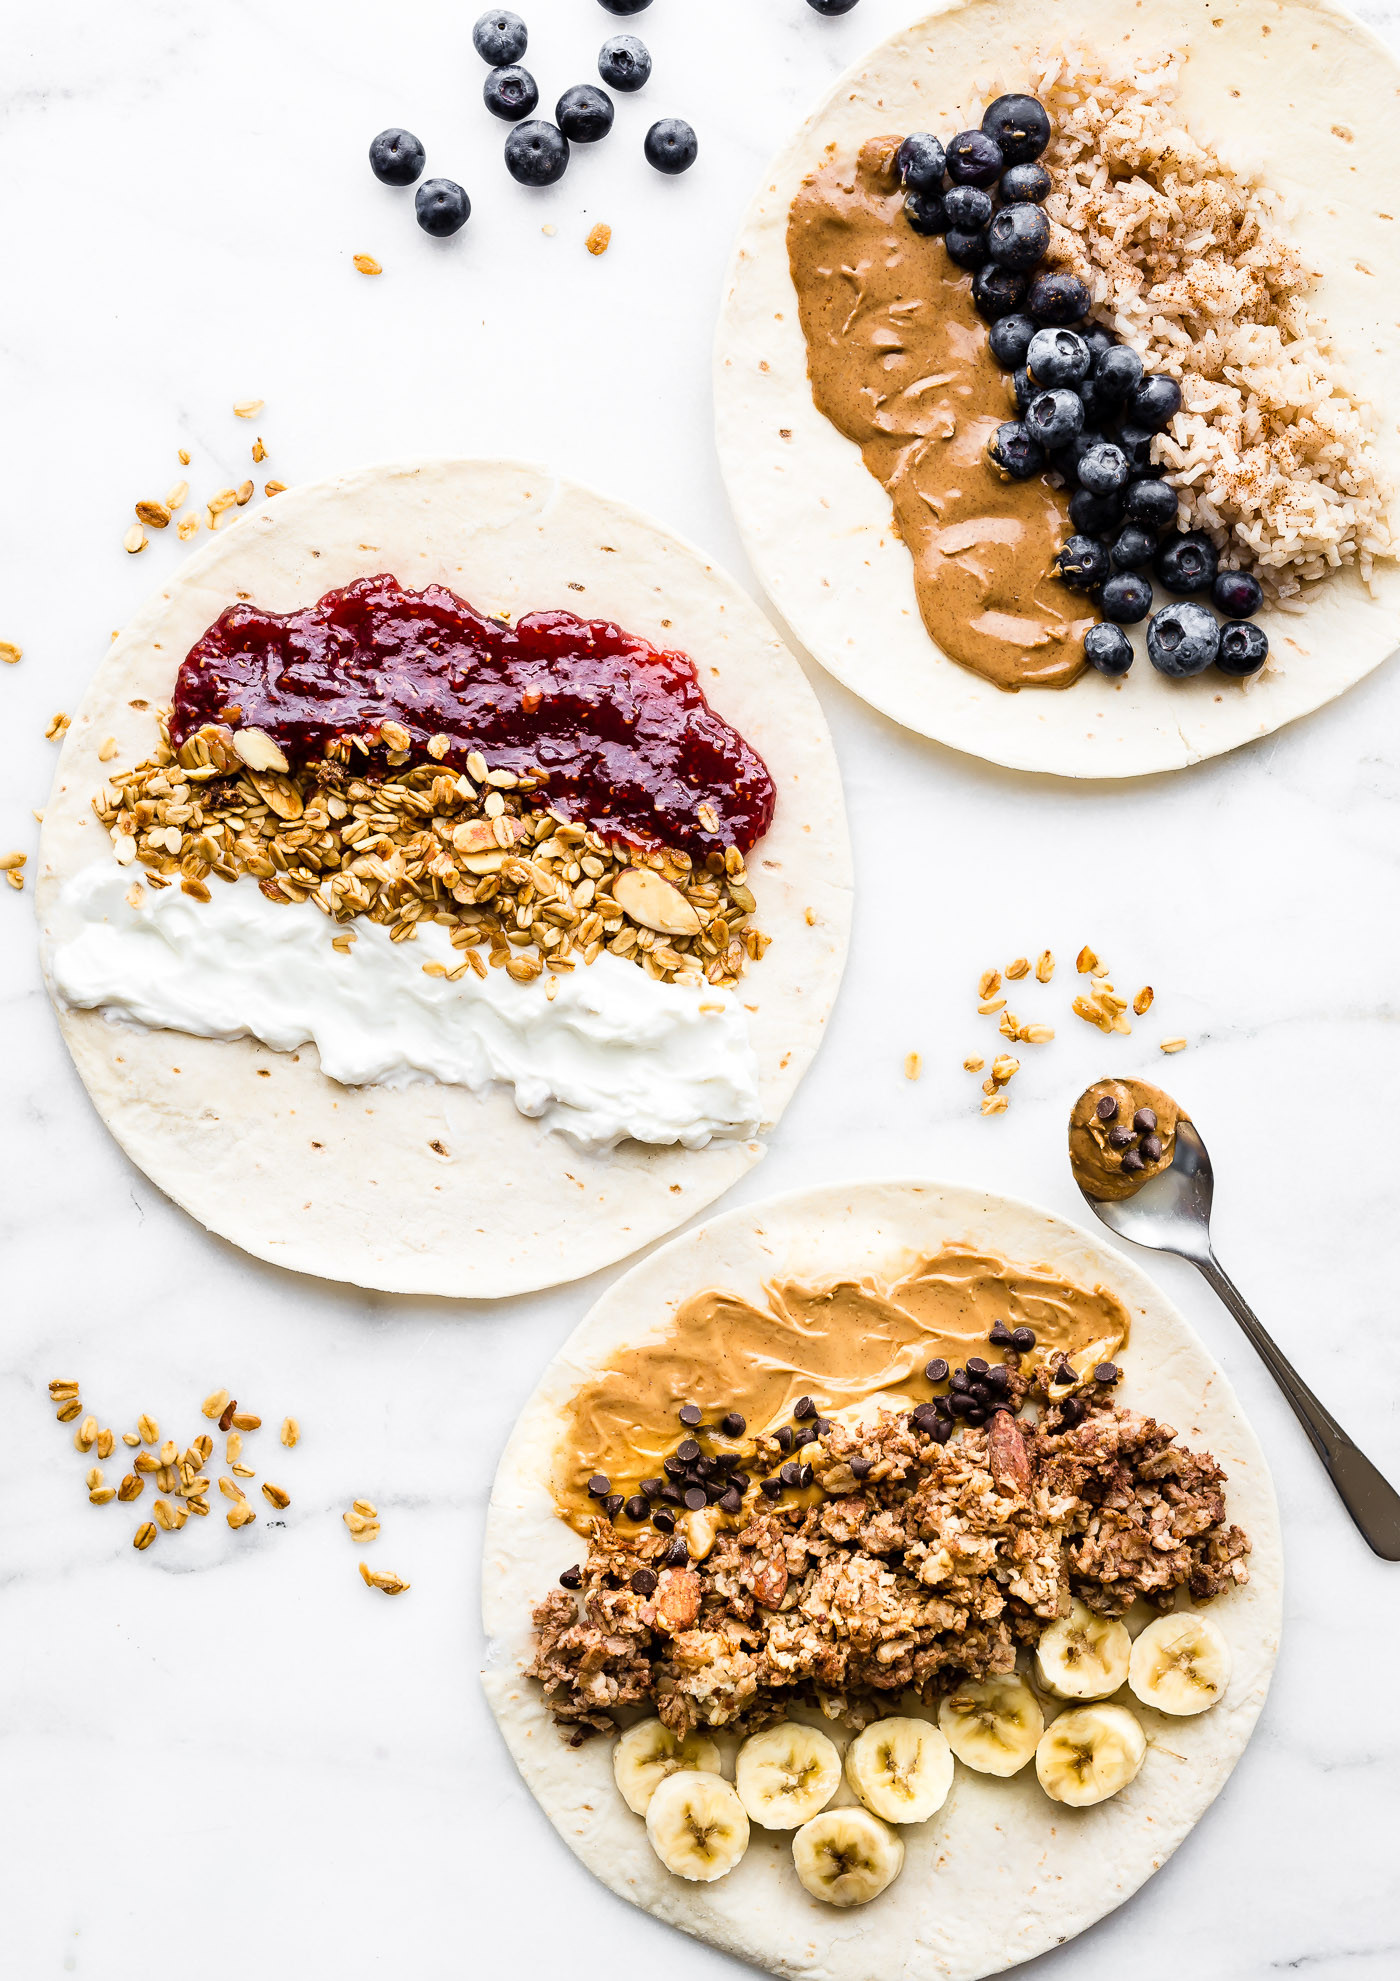 Healthy To Go Breakfast  Grab and Go Gluten Free Breakfast Wraps 3 Ways